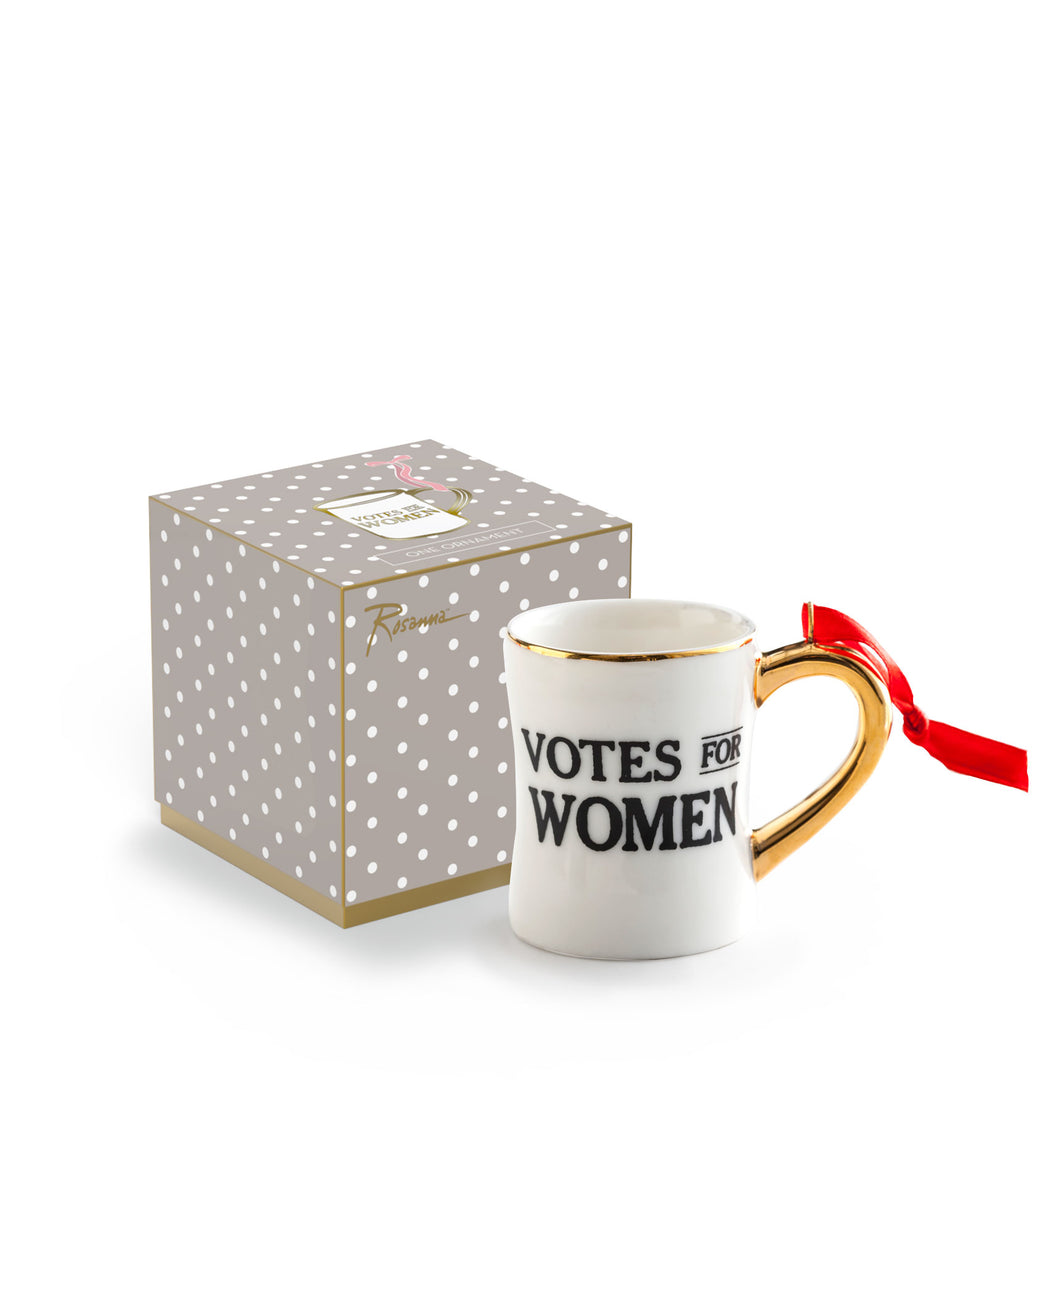 Votes for Women Ornament